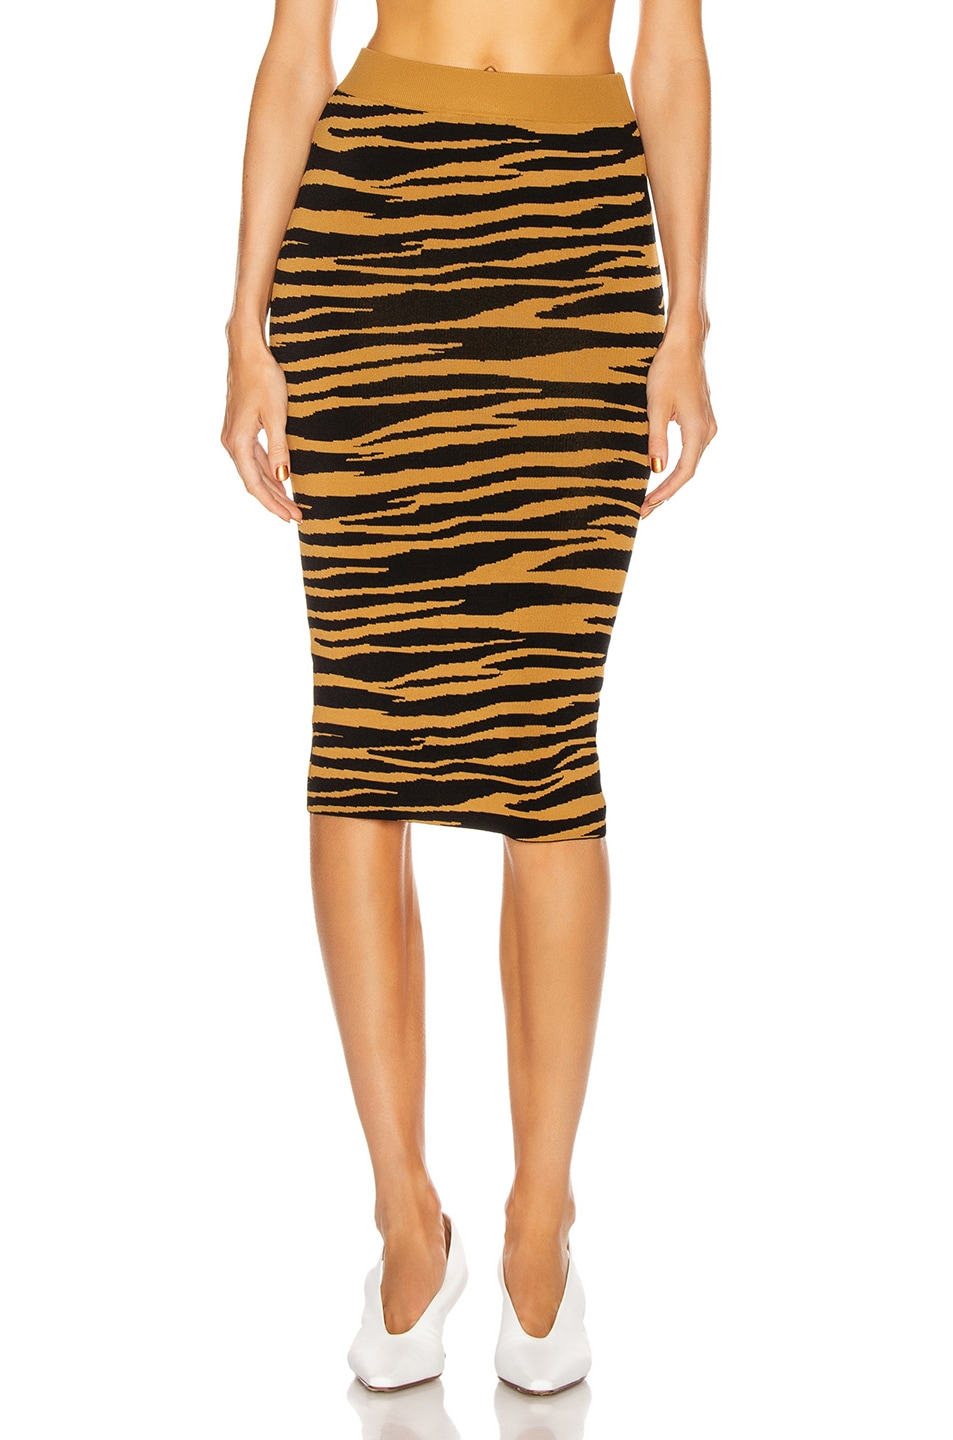 Image 1 of GRLFRND Toni Midi Skirt in Black and Gold